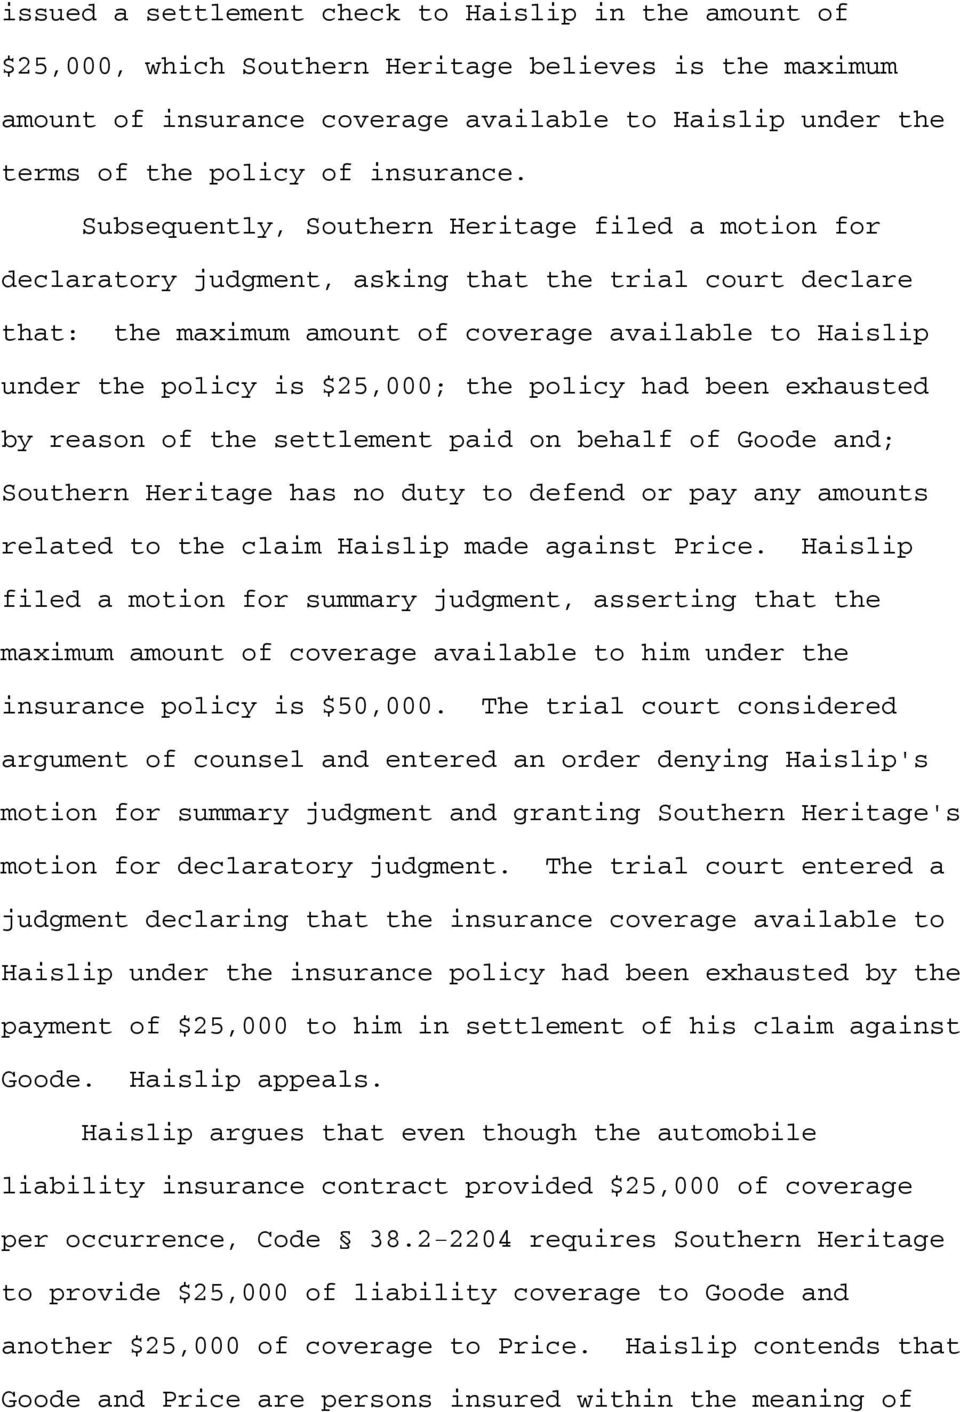 Subsequently, Southern Heritage filed a motion for declaratory judgment, asking that the trial court declare that: the maximum amount of coverage available to Haislip under the policy is $25,000; the